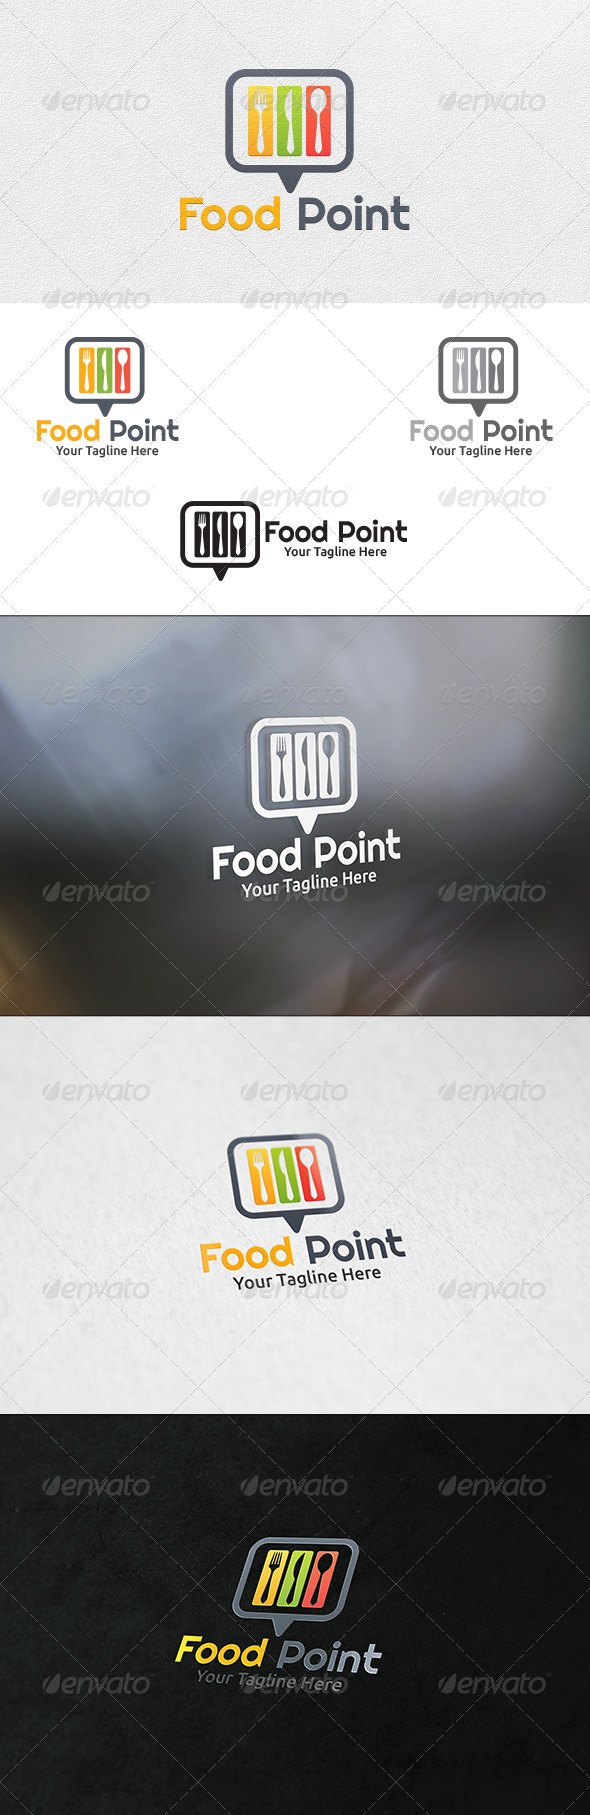 Food Point - Logo Template - Food Logo Templates